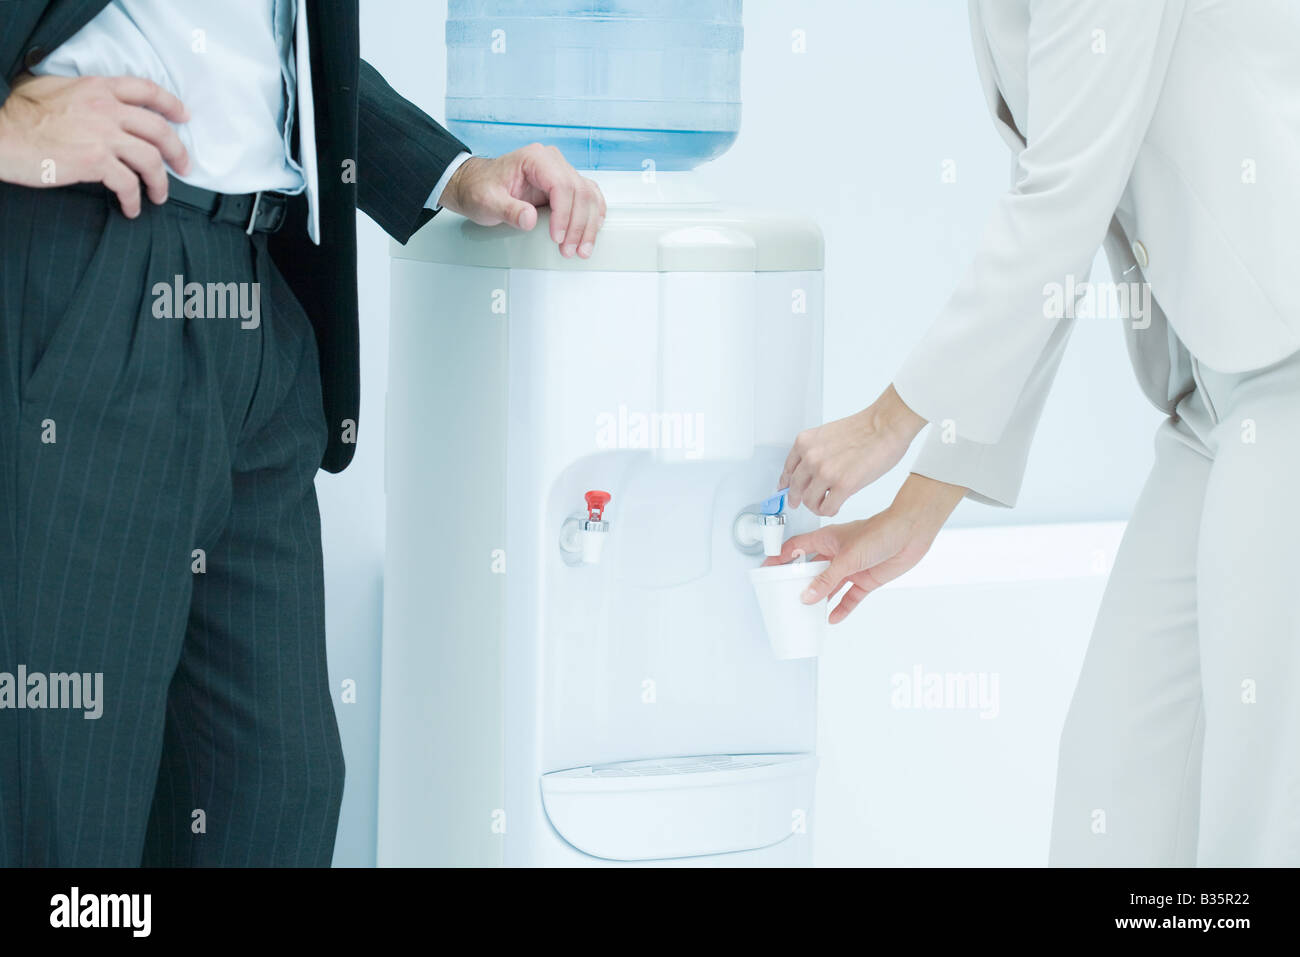 Professional woman filling disposable cup with water from water cooler, male colleague standing nearby, cropped - Stock Image